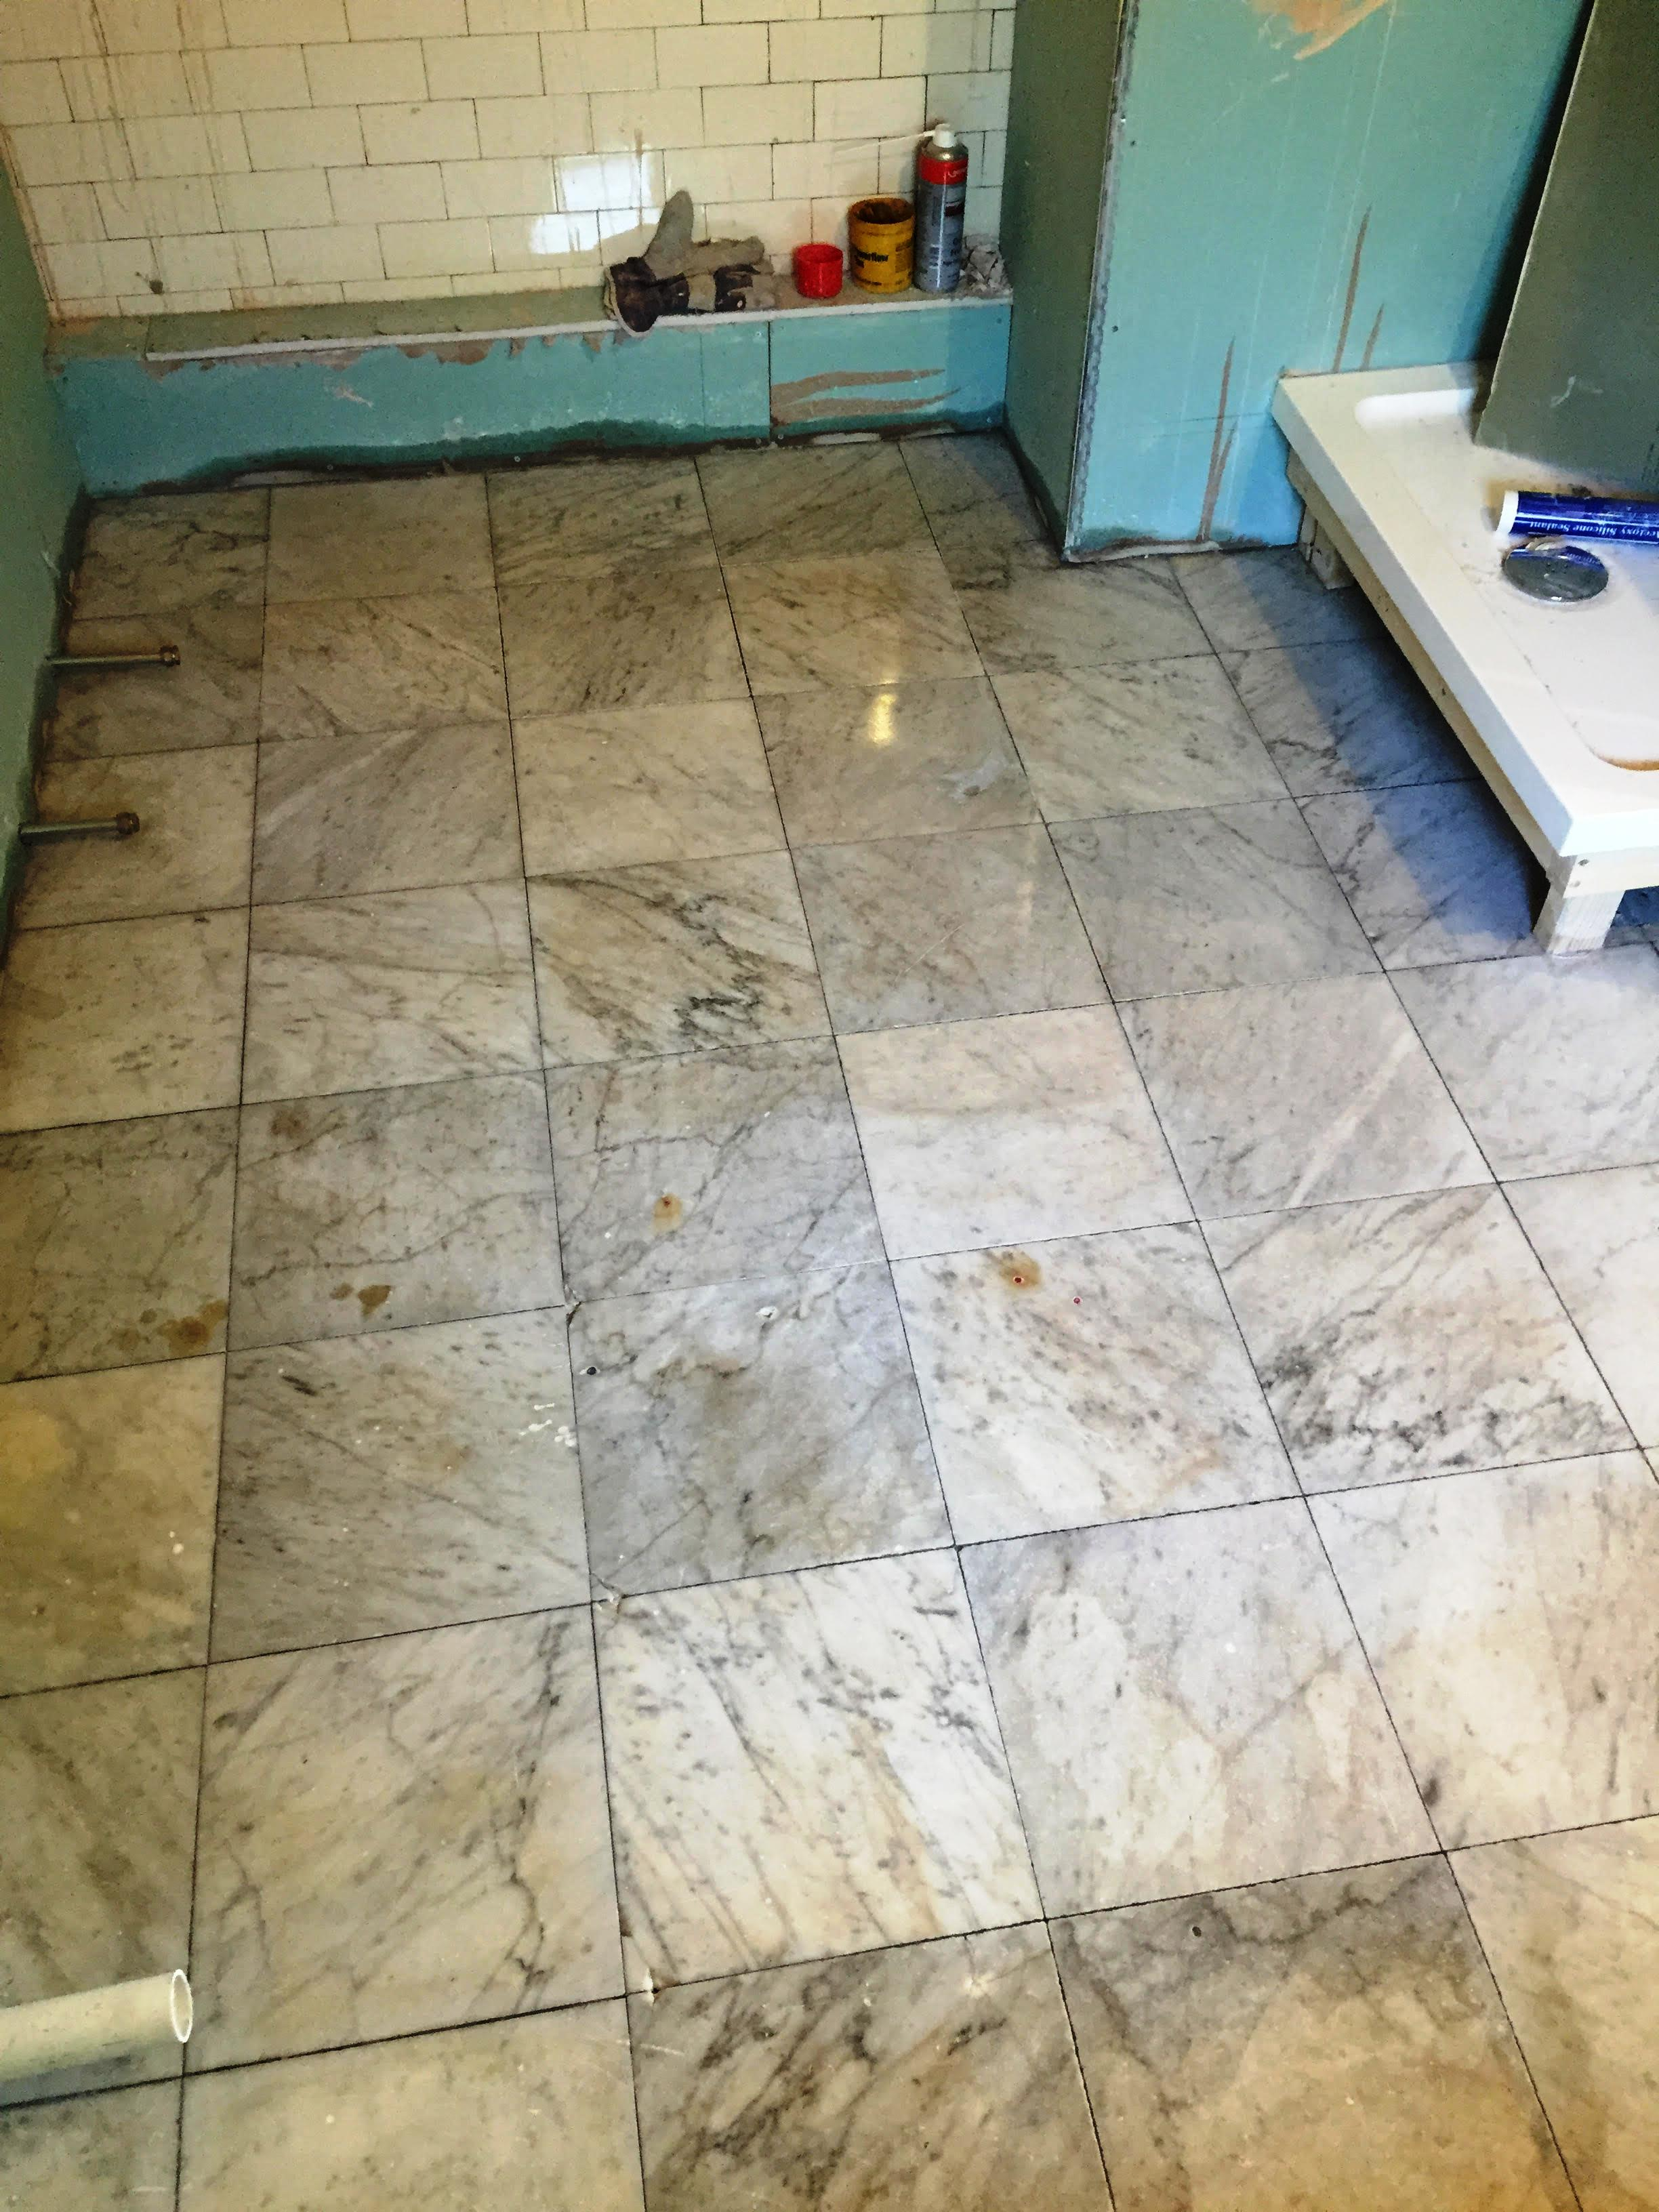 Edinburgh Tile Doctor | Your local Tile, Stone and Grout Sleaning ...